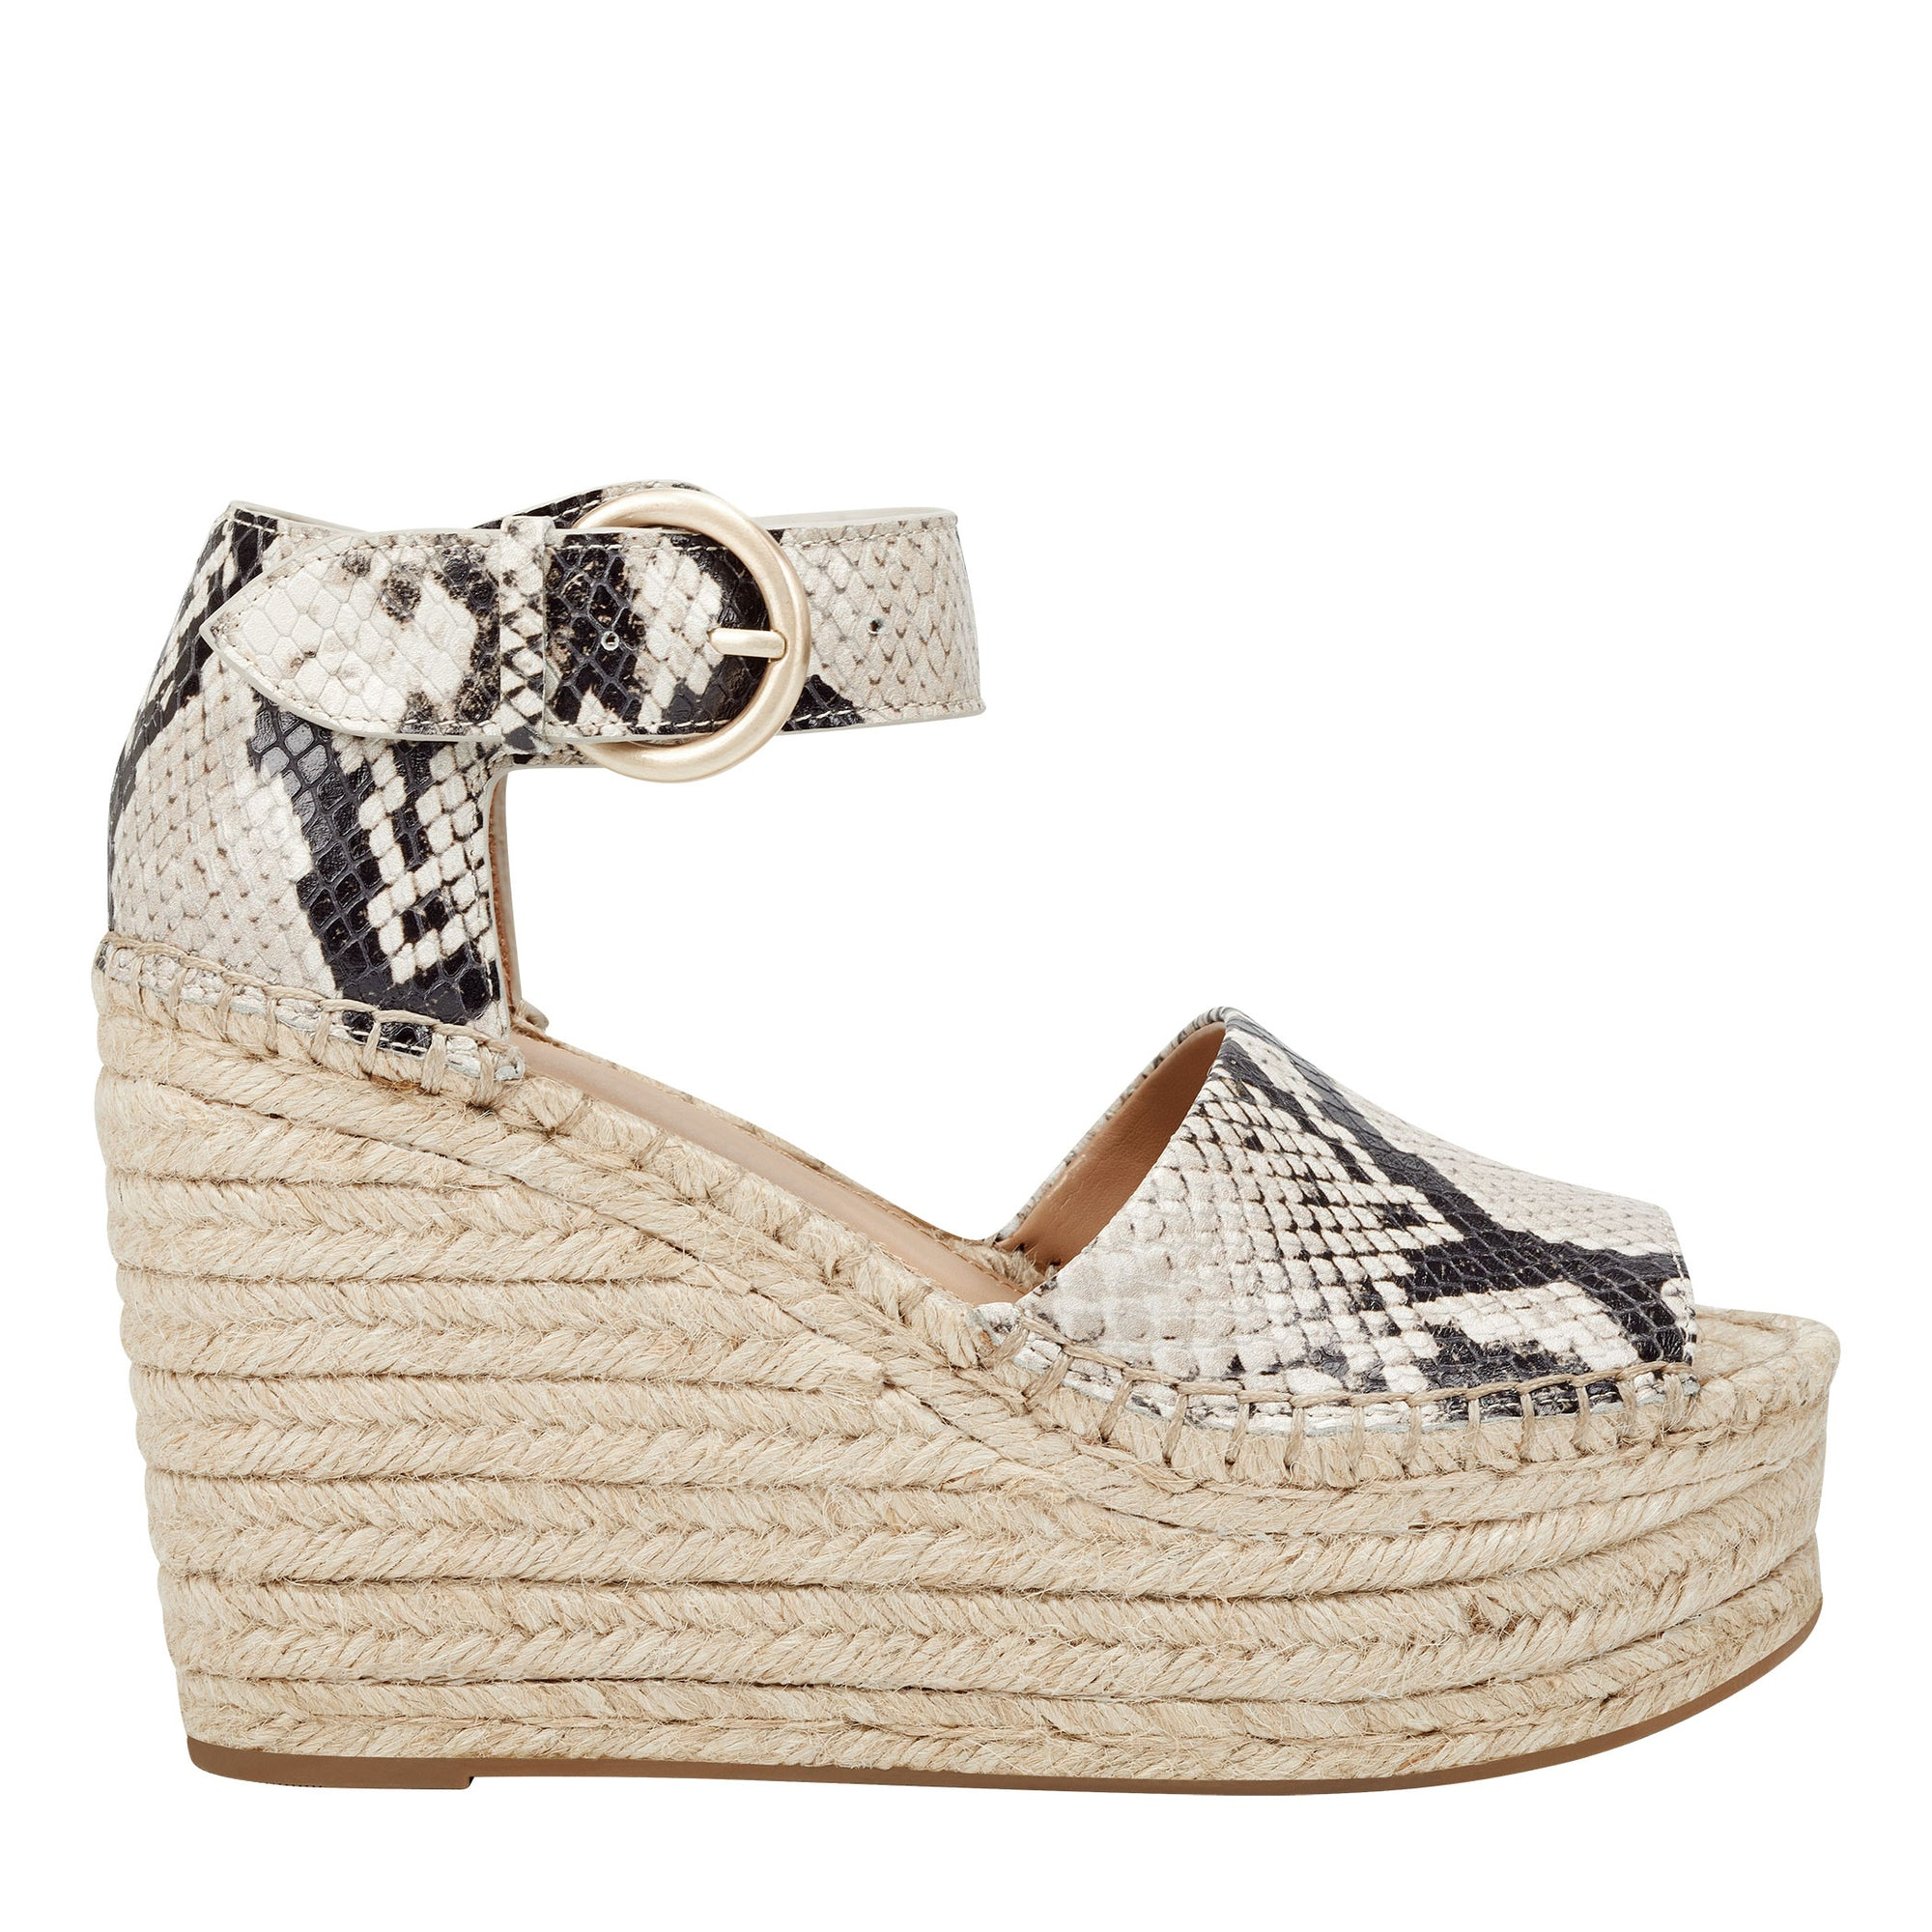 alida-espadrille-wedge-sandal-in-snake-multi-leather